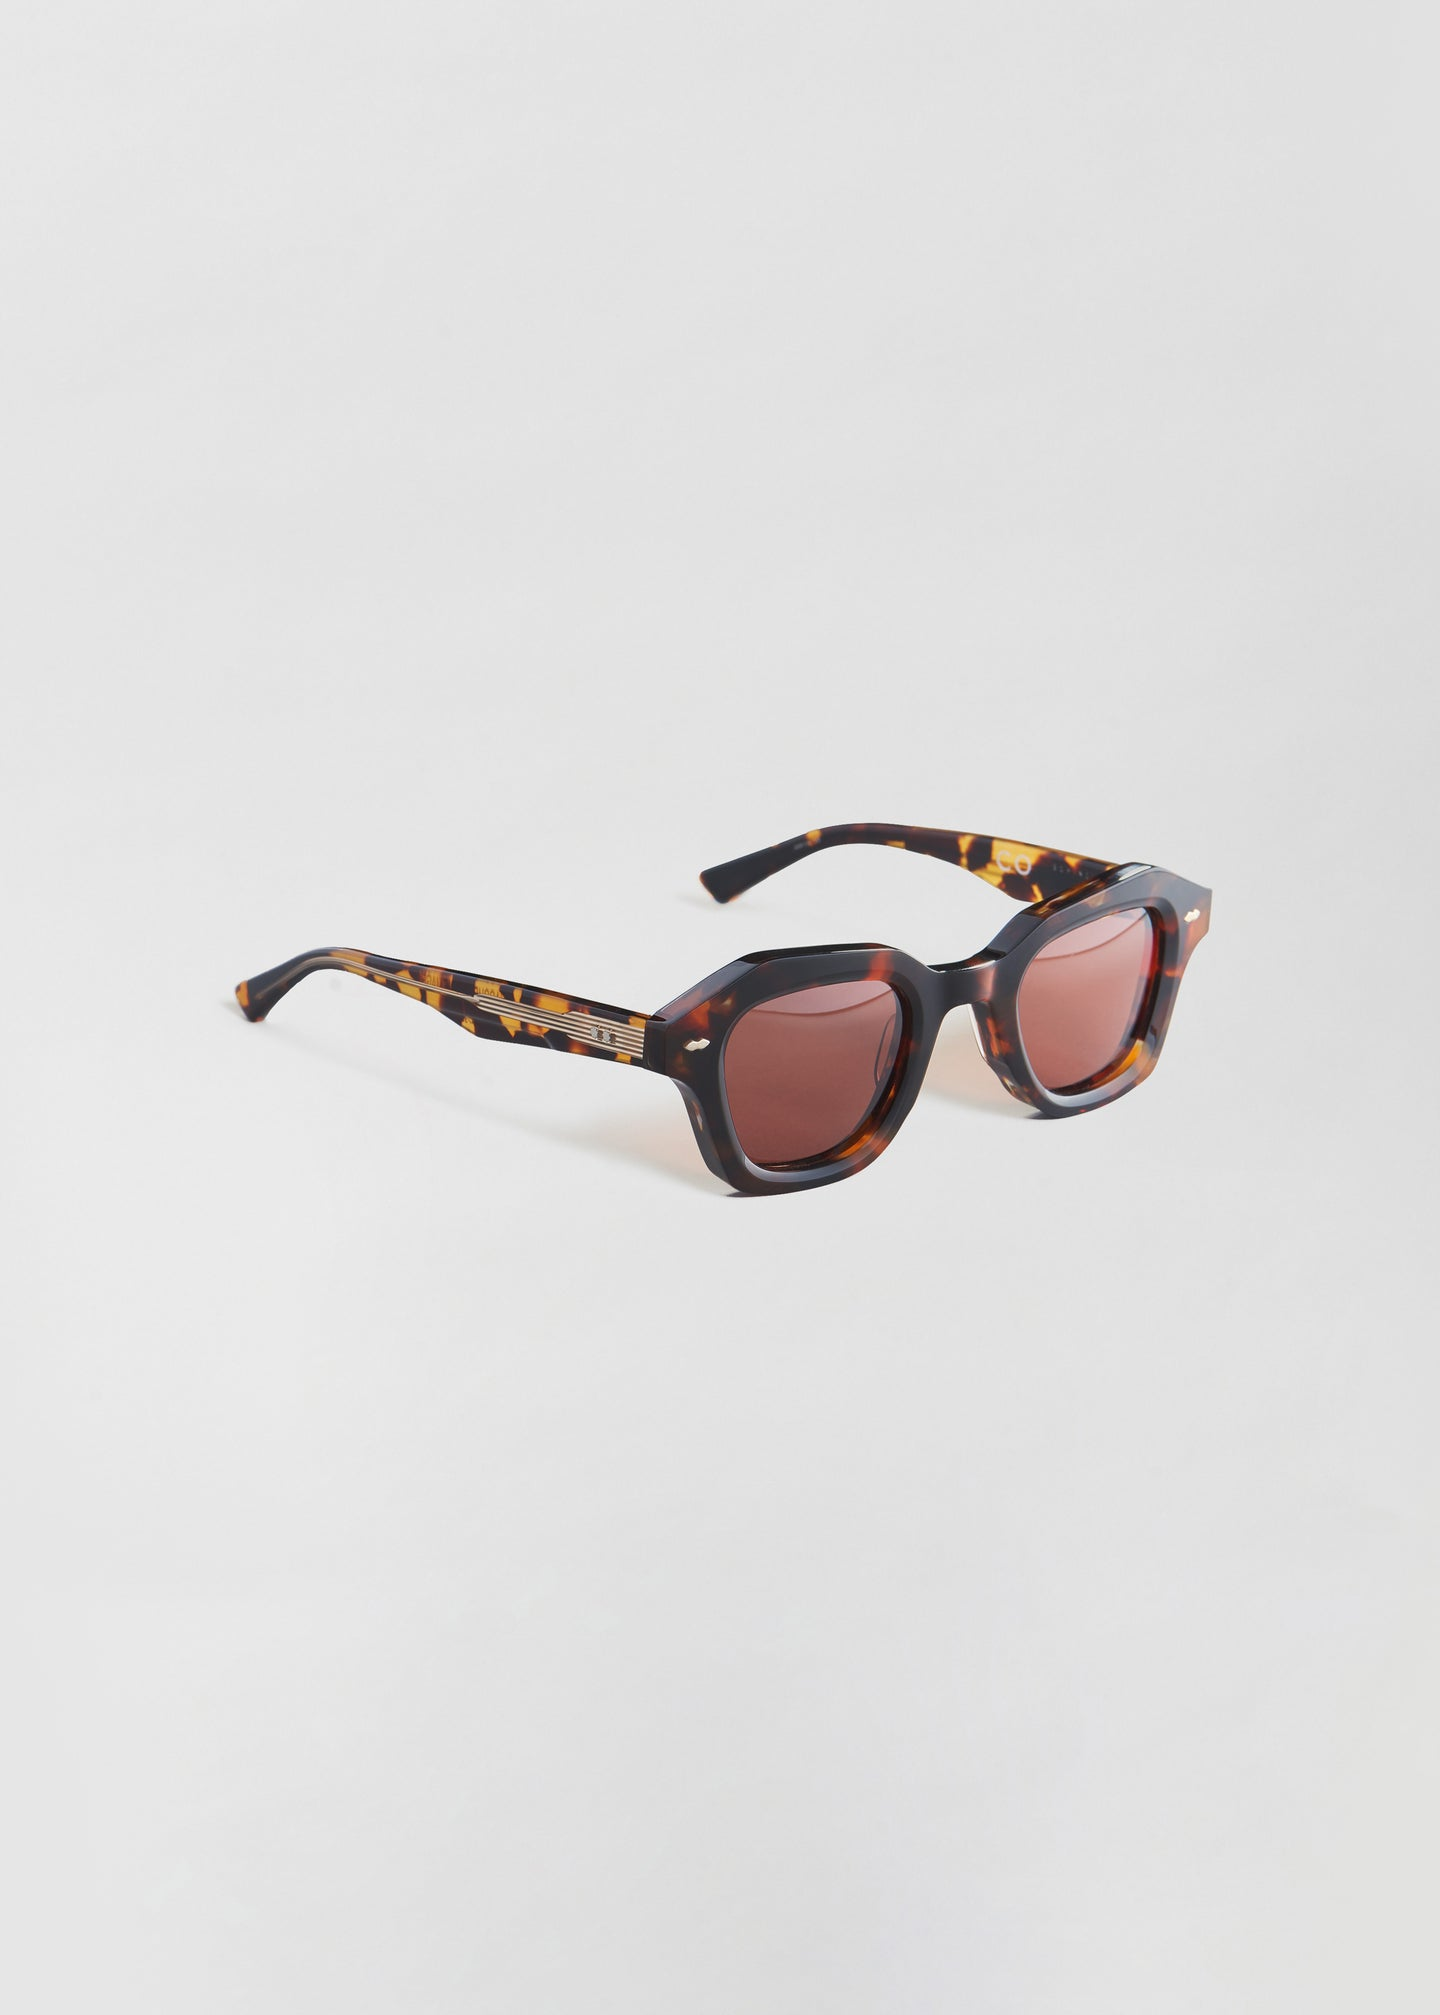 Schindler Sunglasses in Lava - CO